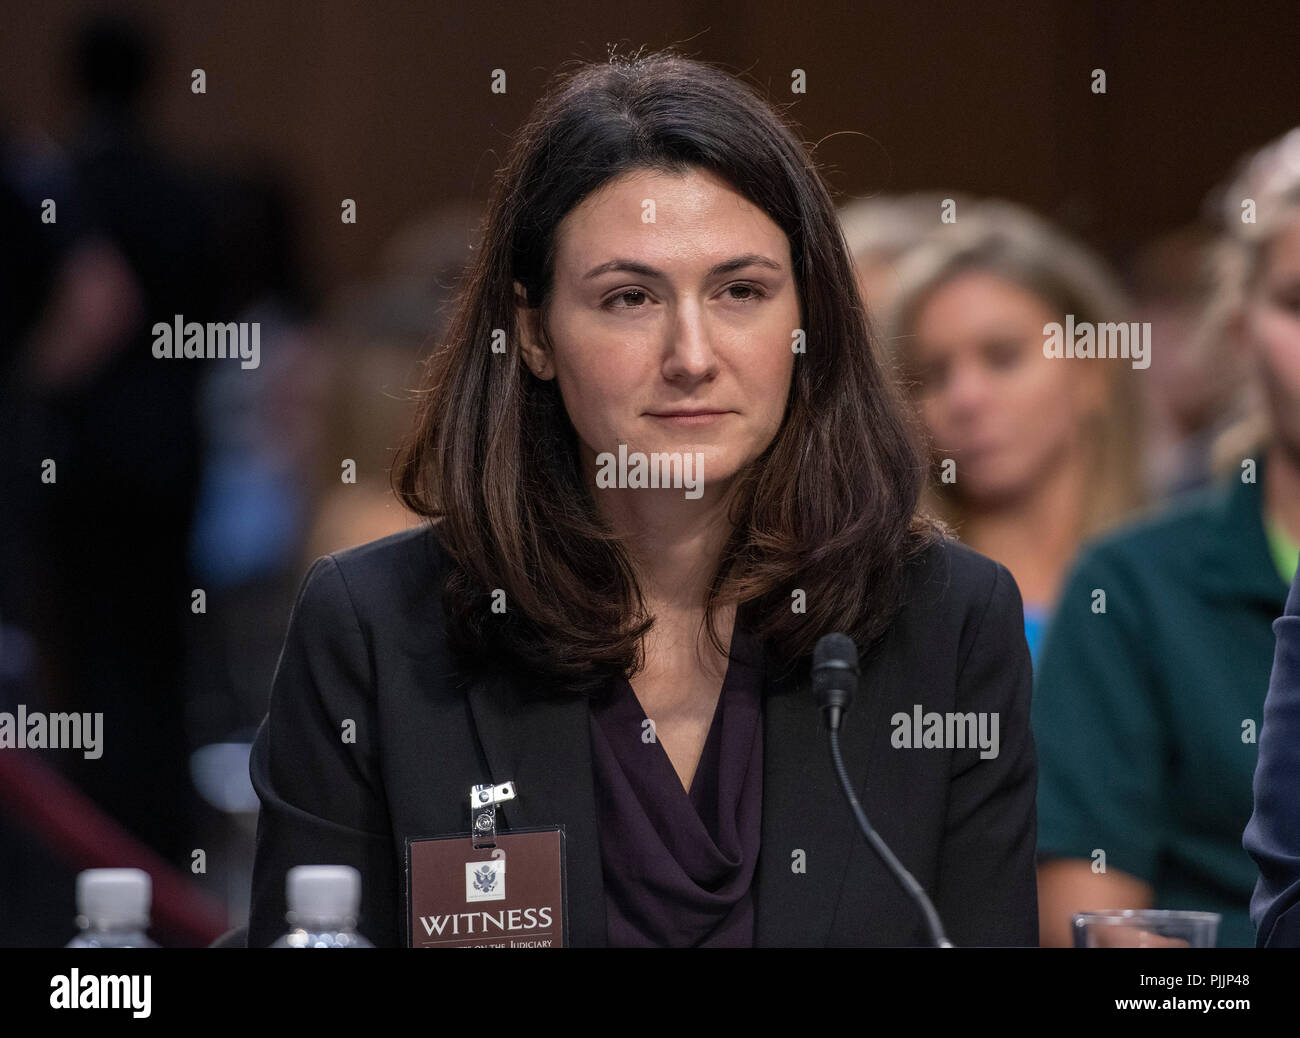 Washington, United States Of America. 07th Sep, 2018. Professor Rebecca Ingber, Associate Professor of Law Boston University School of Law, Boston, Massachusetts, testifies against the nomination of Judge Brett Kavanaugh before the US Senate Judiciary Committee on his nomination as Associate Justice of the US Supreme Court to replace the retiring Justice Anthony Kennedy on Capitol Hill in Washington, DC on Friday, September 7, 2018. Credit: Ron Sachs/CNP   usage worldwide Credit: dpa/Alamy Live News - Stock Image